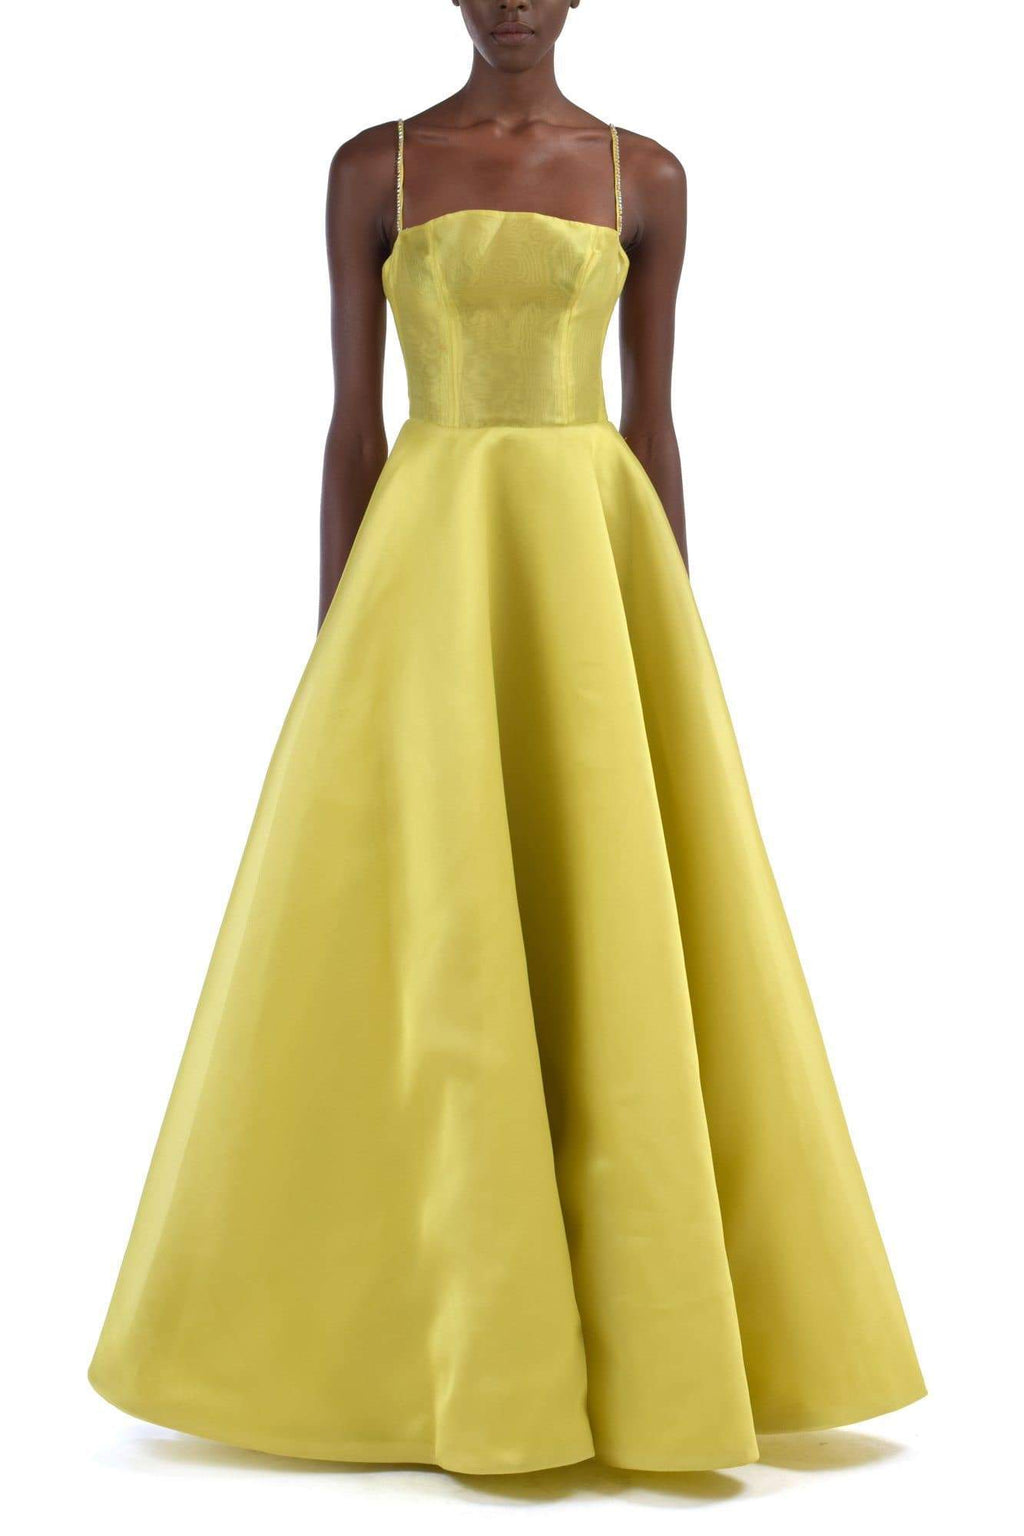 Sada Minimalist Ballgown Dress With Beaded Straps - BYTRIBUTE